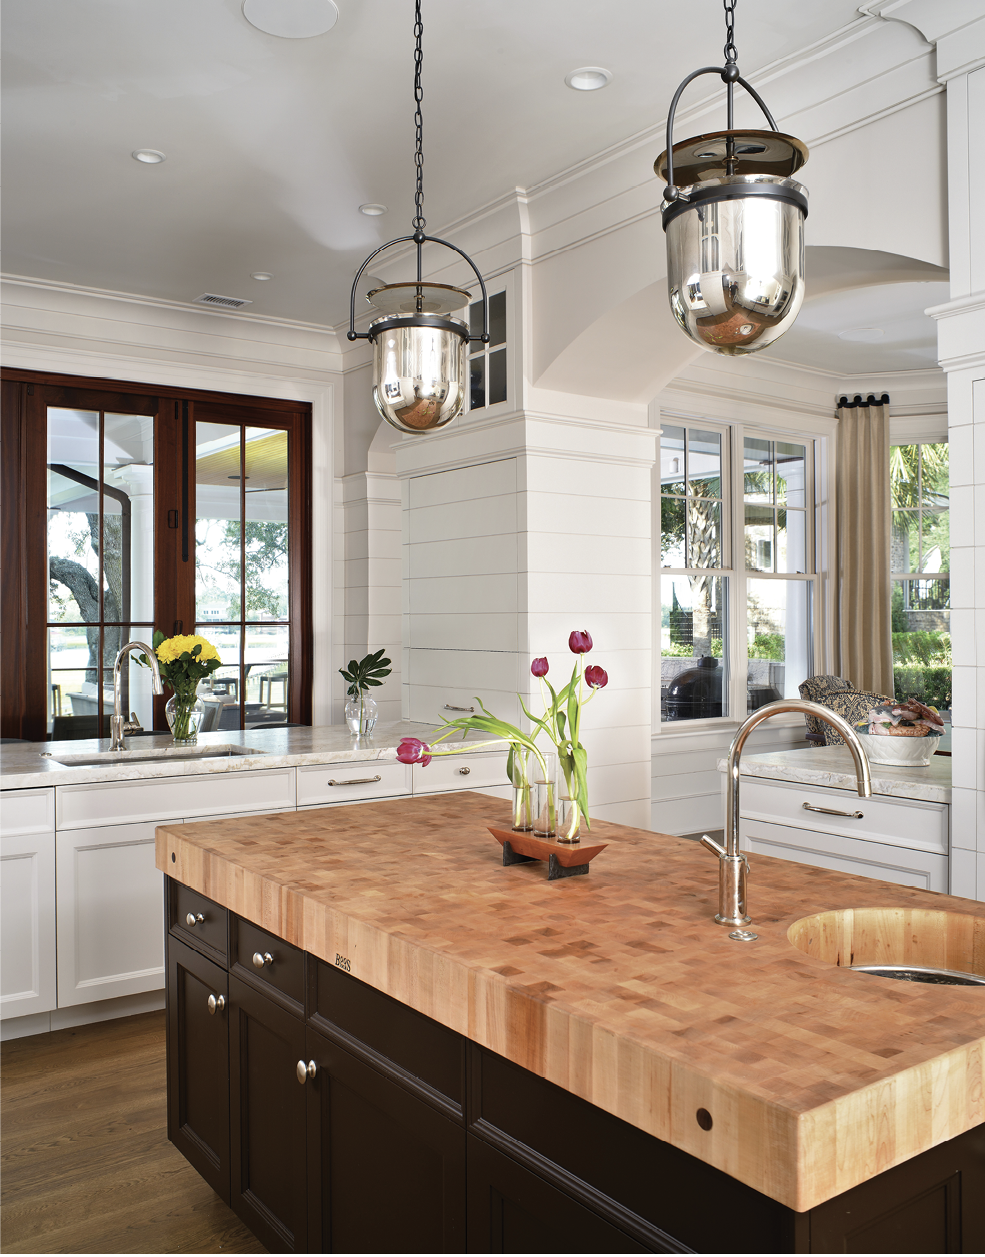 The kitchen features a Boos Block island and industrial-style pendant lights from Urban Electric.